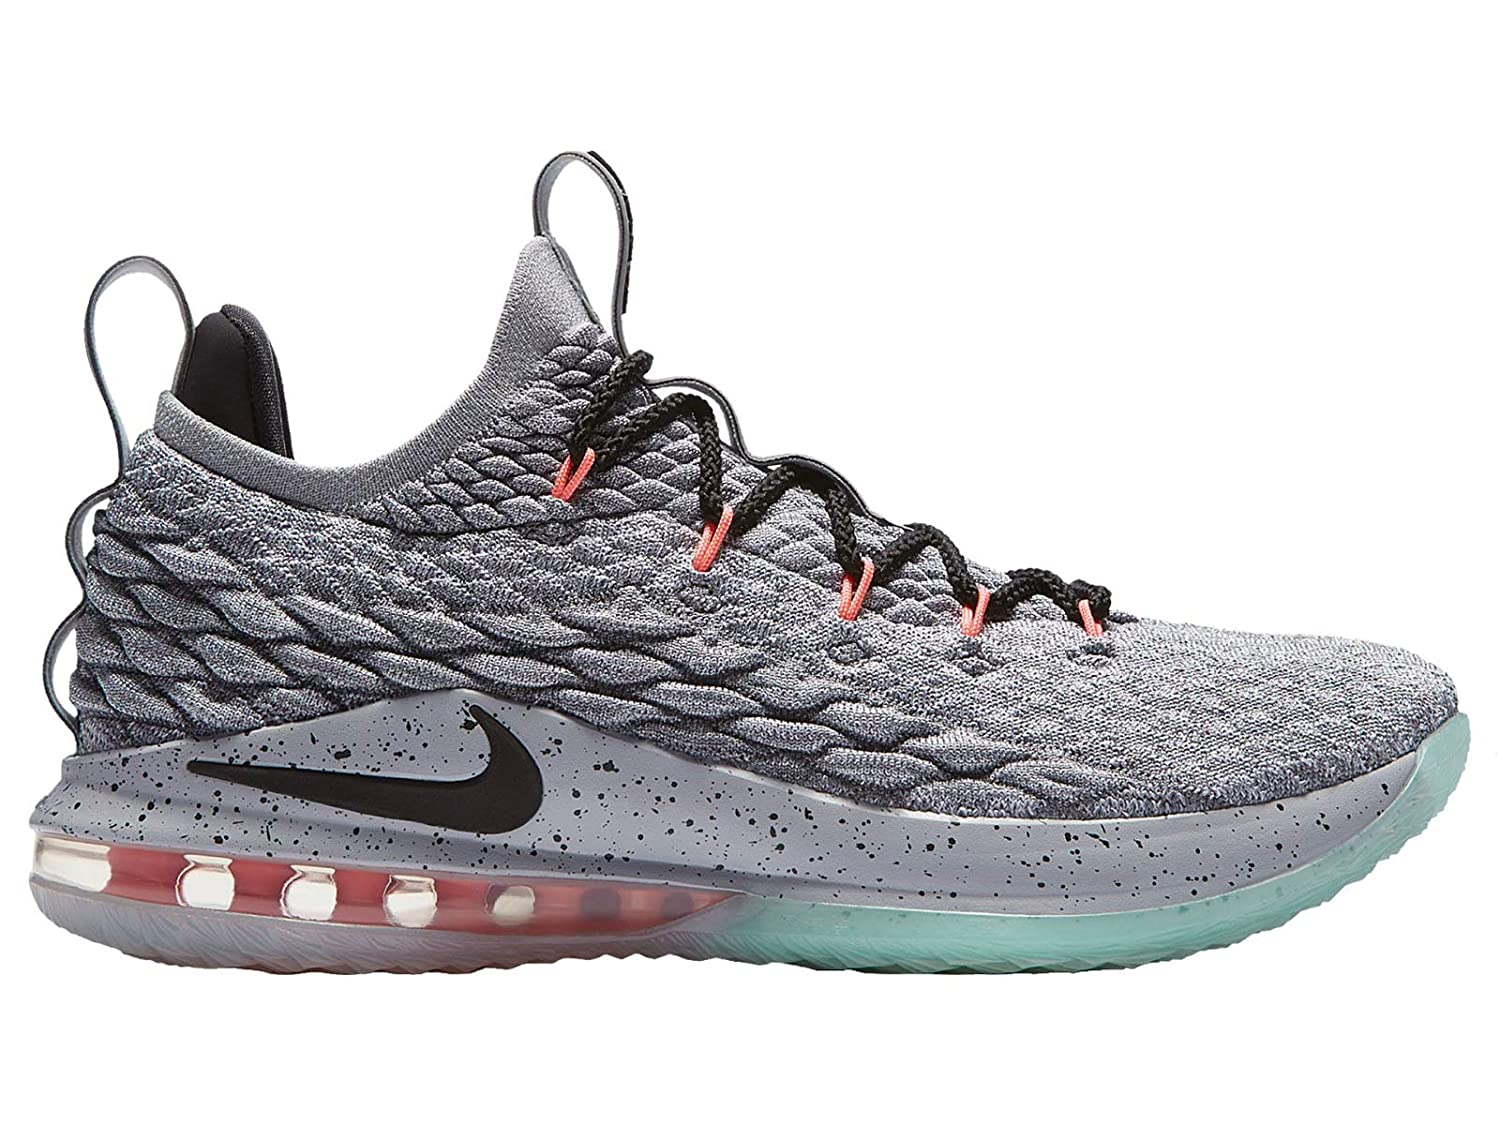 new style de74e 8b5d8 Nike Lebron 15 Low - Men's Lebron James Nylon Basketball Shoes 10.5 D(M) US  Grey